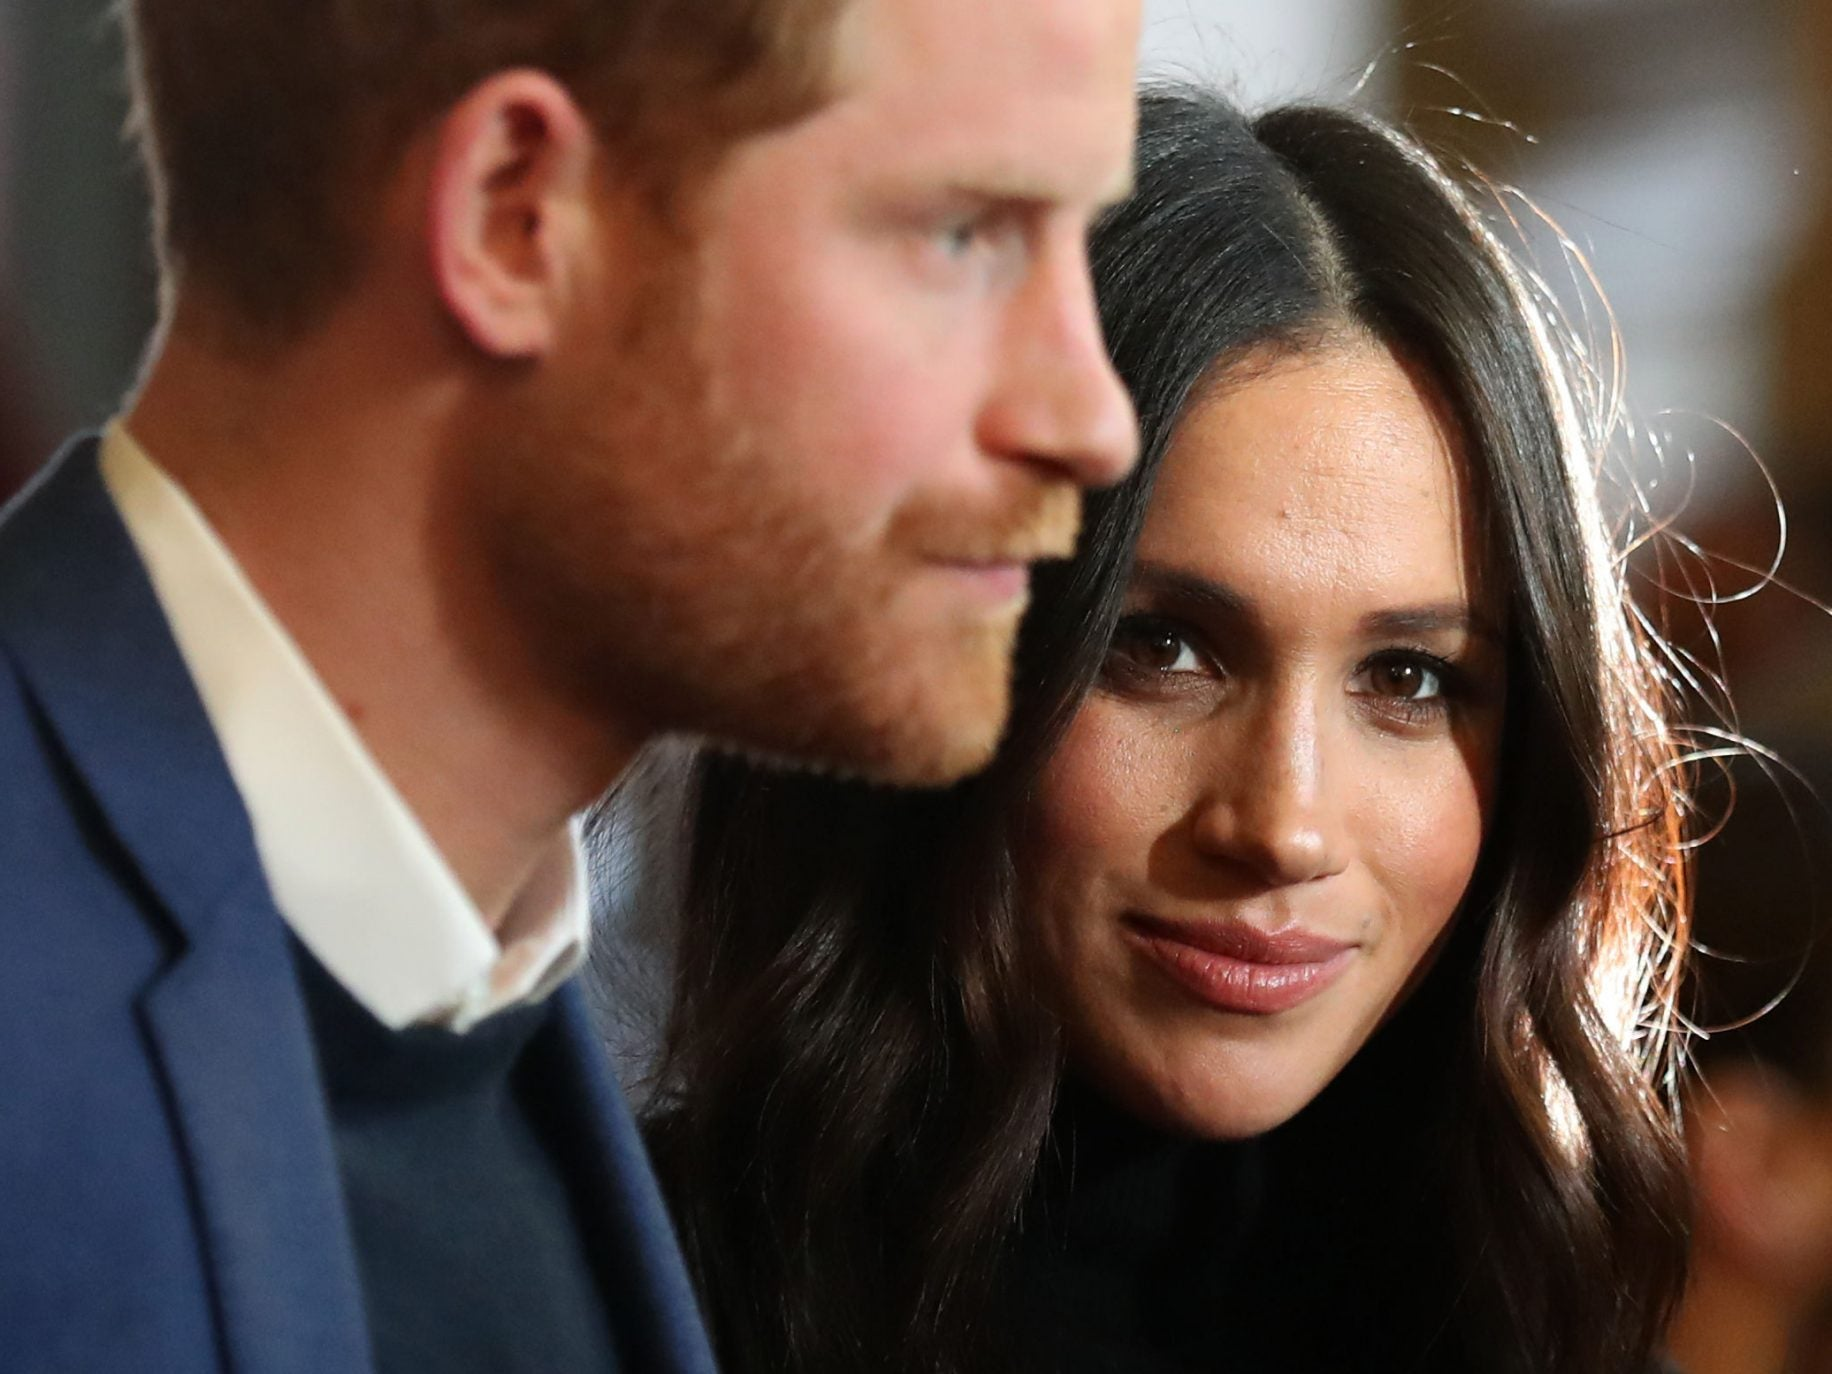 Relationship Expert Tracy McMillan Weighs In On Prince Harry And Meghan Markle's Royal Exit